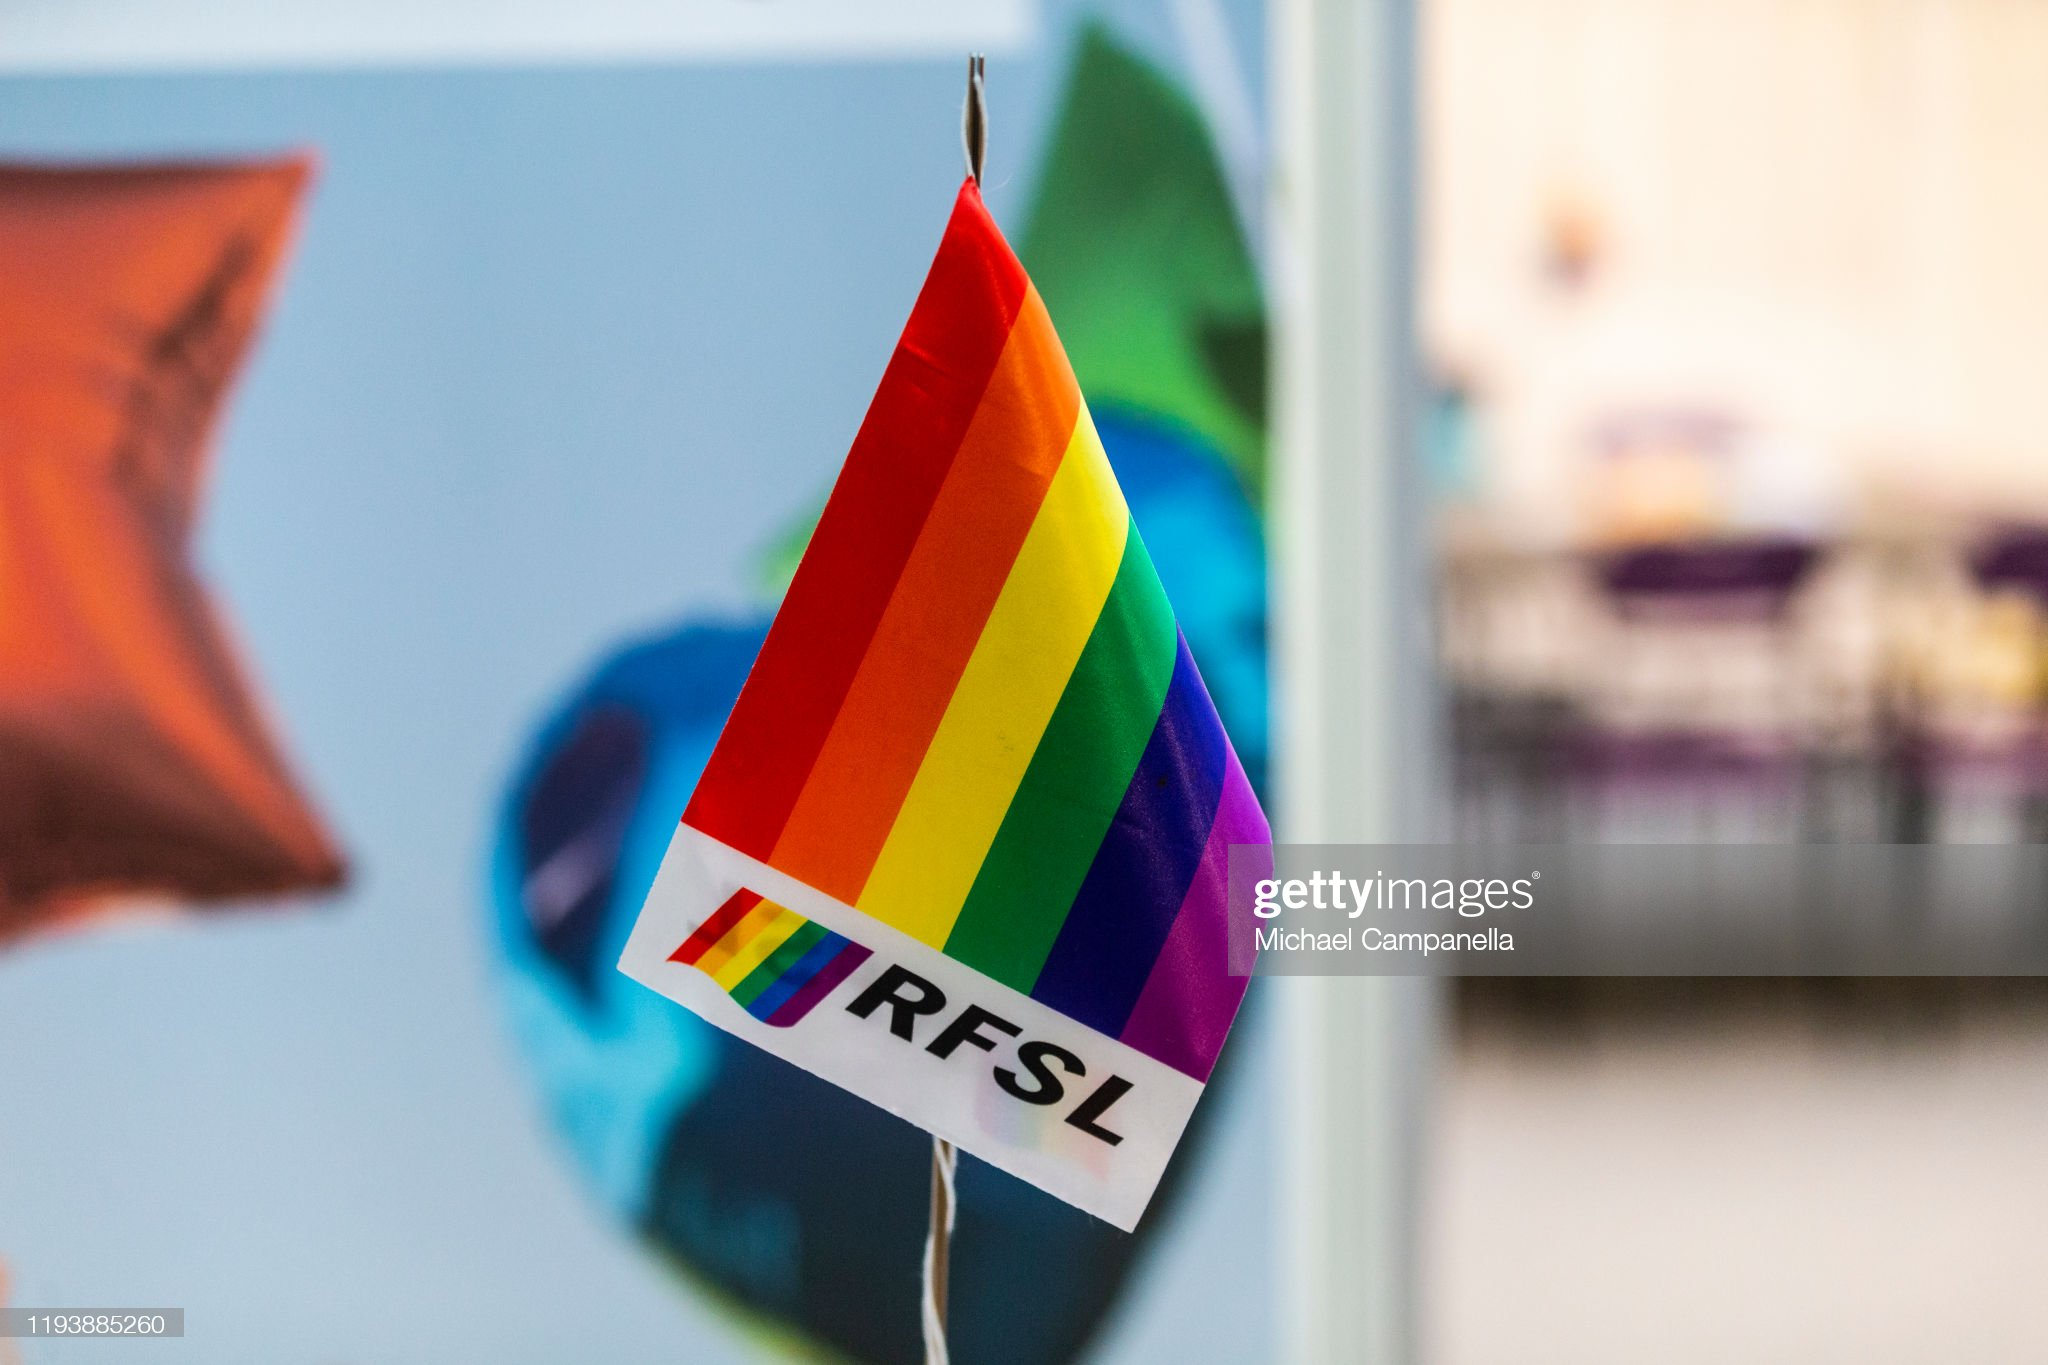 logo-for-swedish-federation-for-lesbian-gay-bisexual-transgender-and-picture-id1193885260